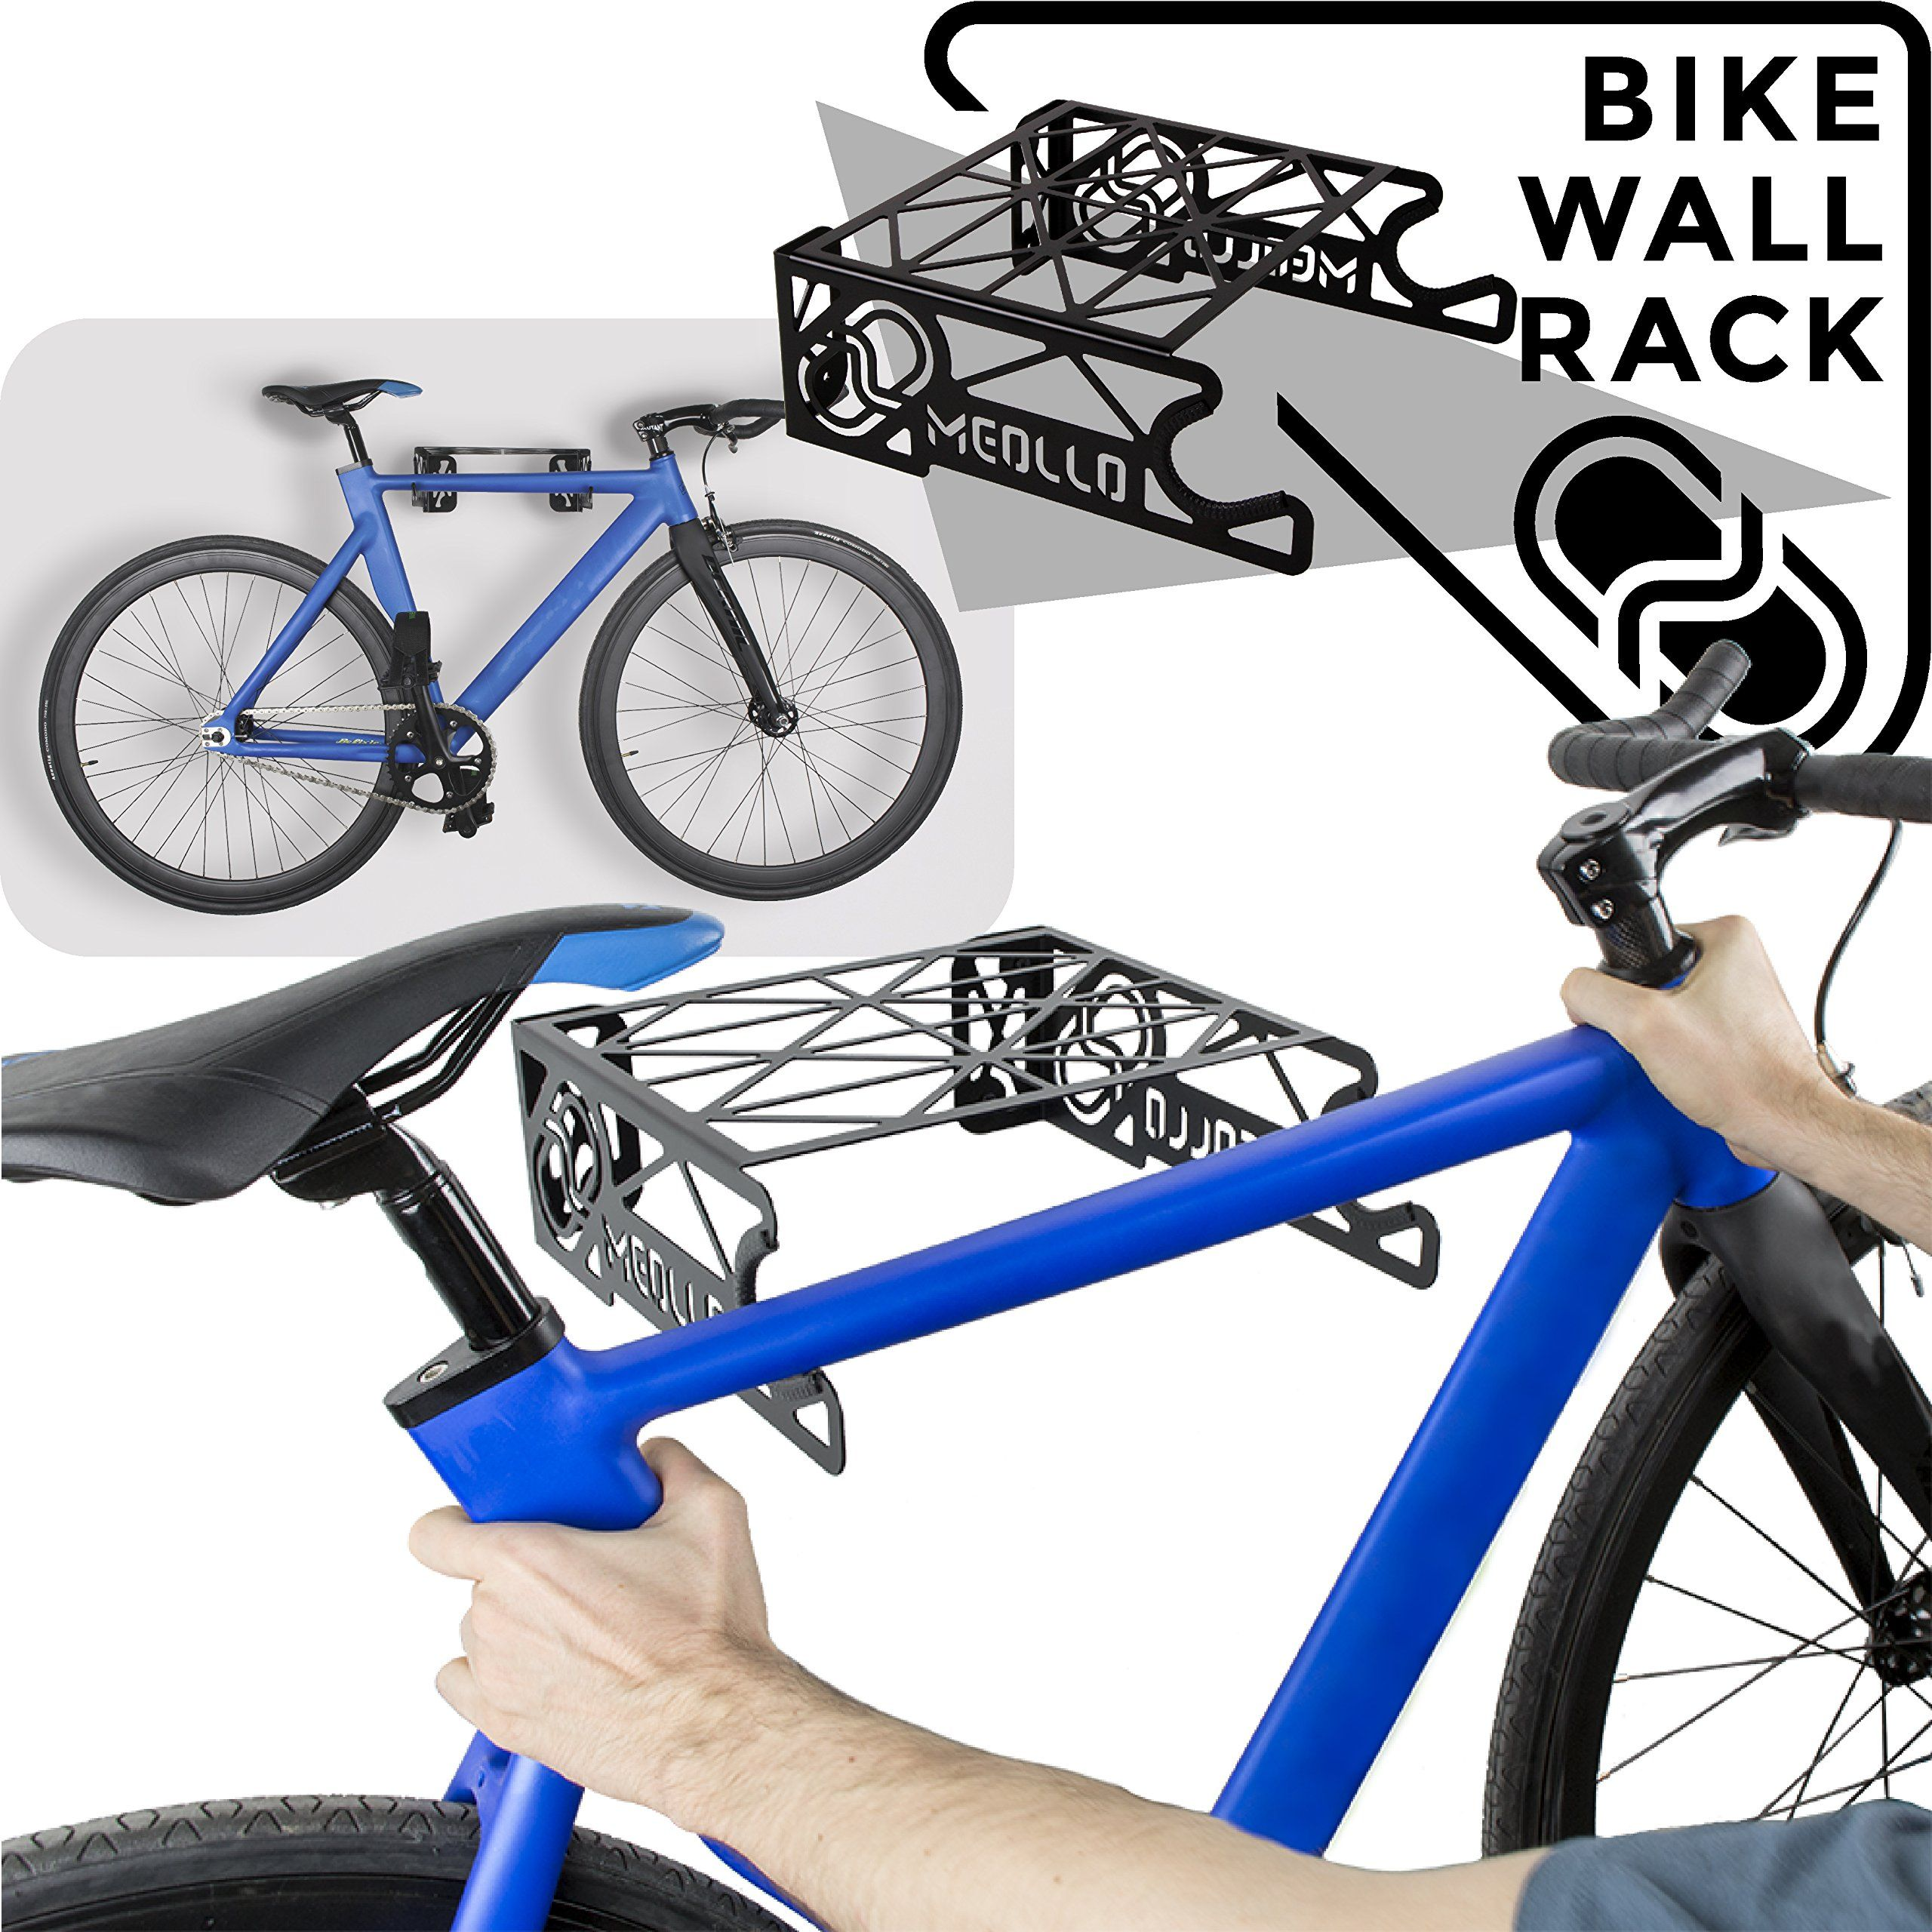 mount ideas spare handlebars my crafty future img this as day wall rack in storage brother and of set law i use idea bike think pinterest would like pin